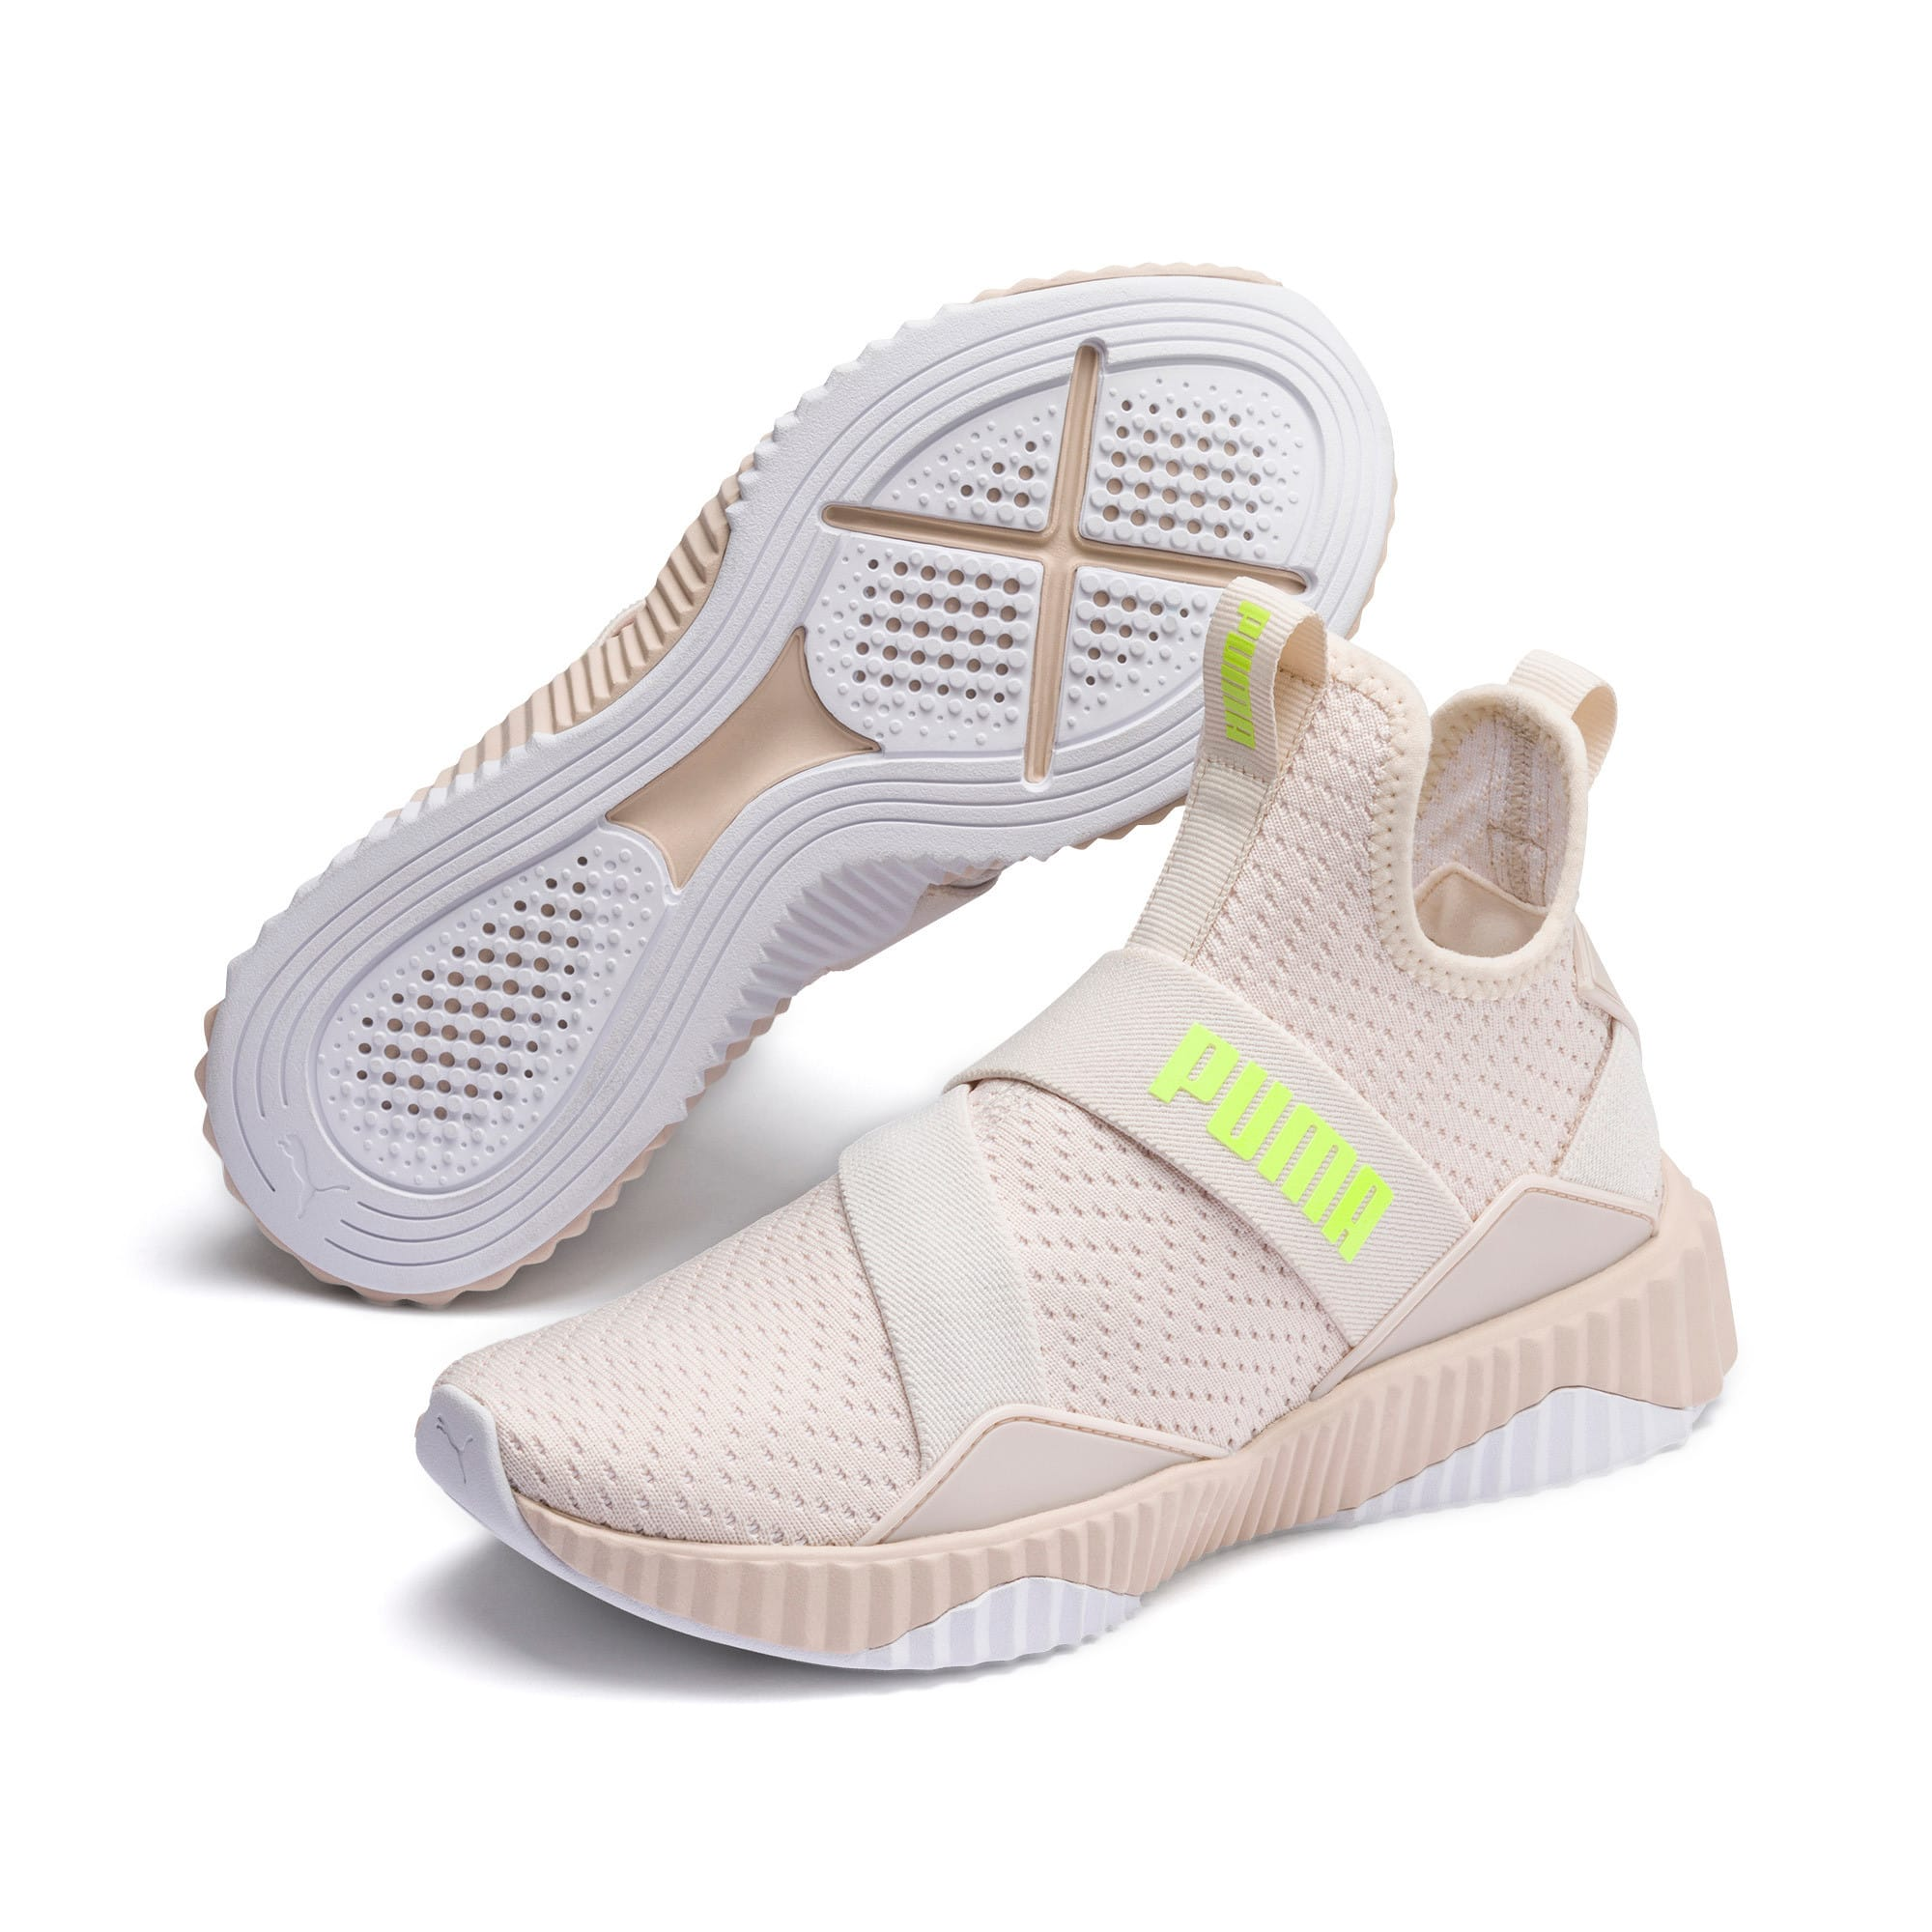 Thumbnail 3 of Defy Mid Core Women's Trainers, Pastel Parchment-Puma White, medium-IND